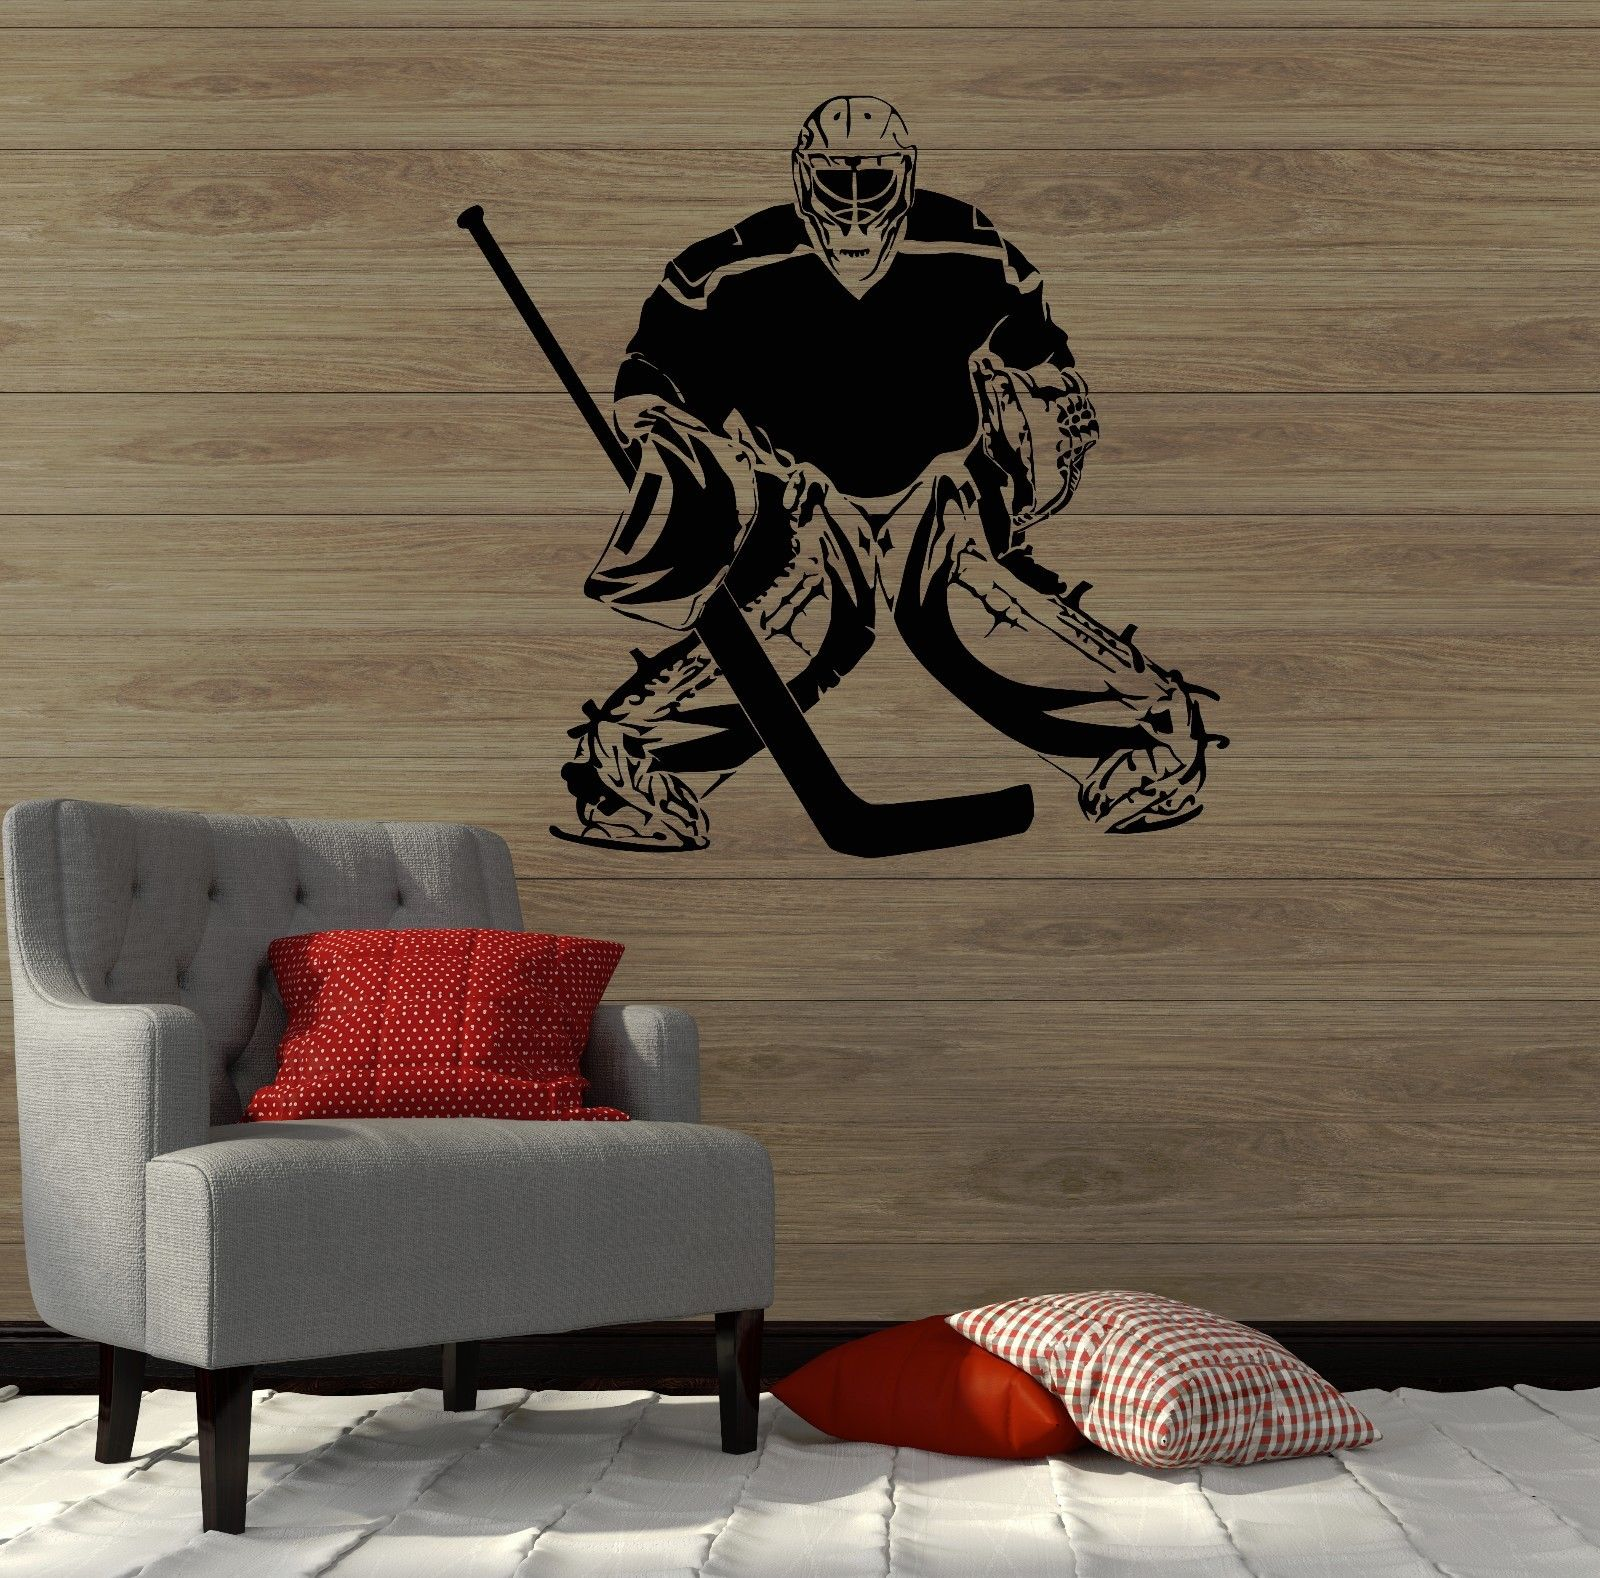 S001 2016 Fashion Removable Sport Wall Decals Hockey Sport ...